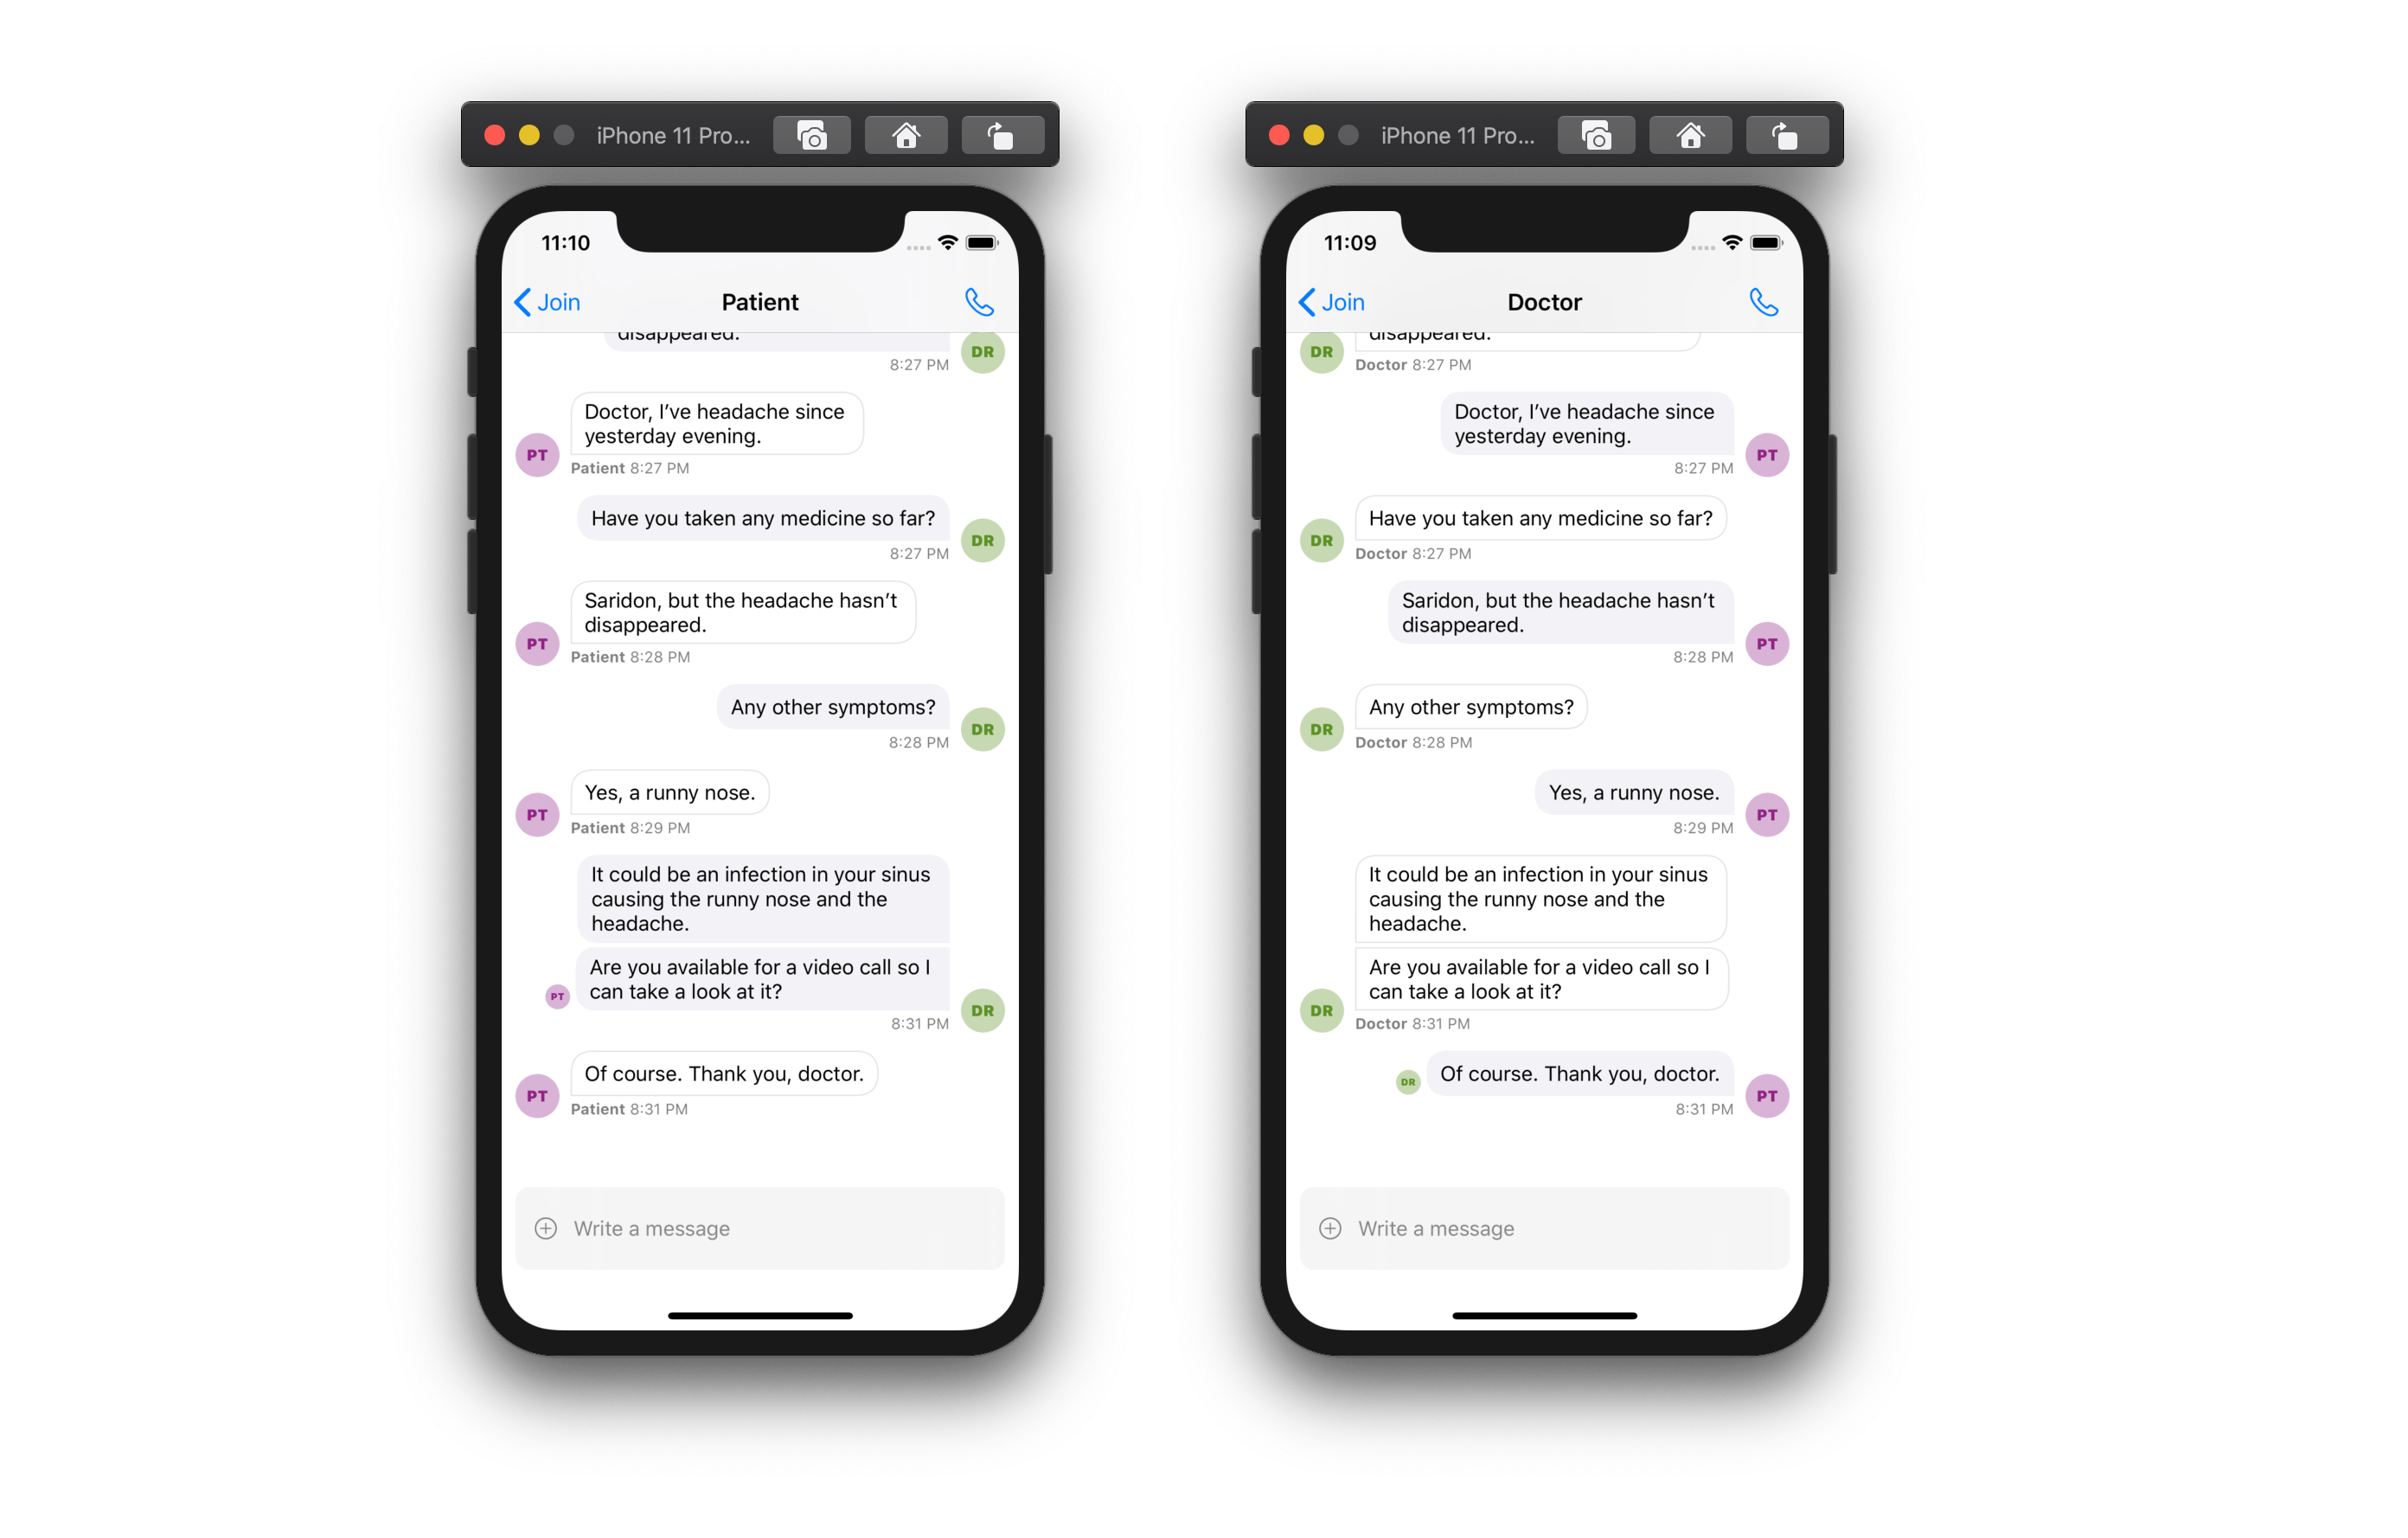 Image shows two screenshots of a conversation in a chat screen, one from the perspective of the patient, and the other from the perspective of the doctor